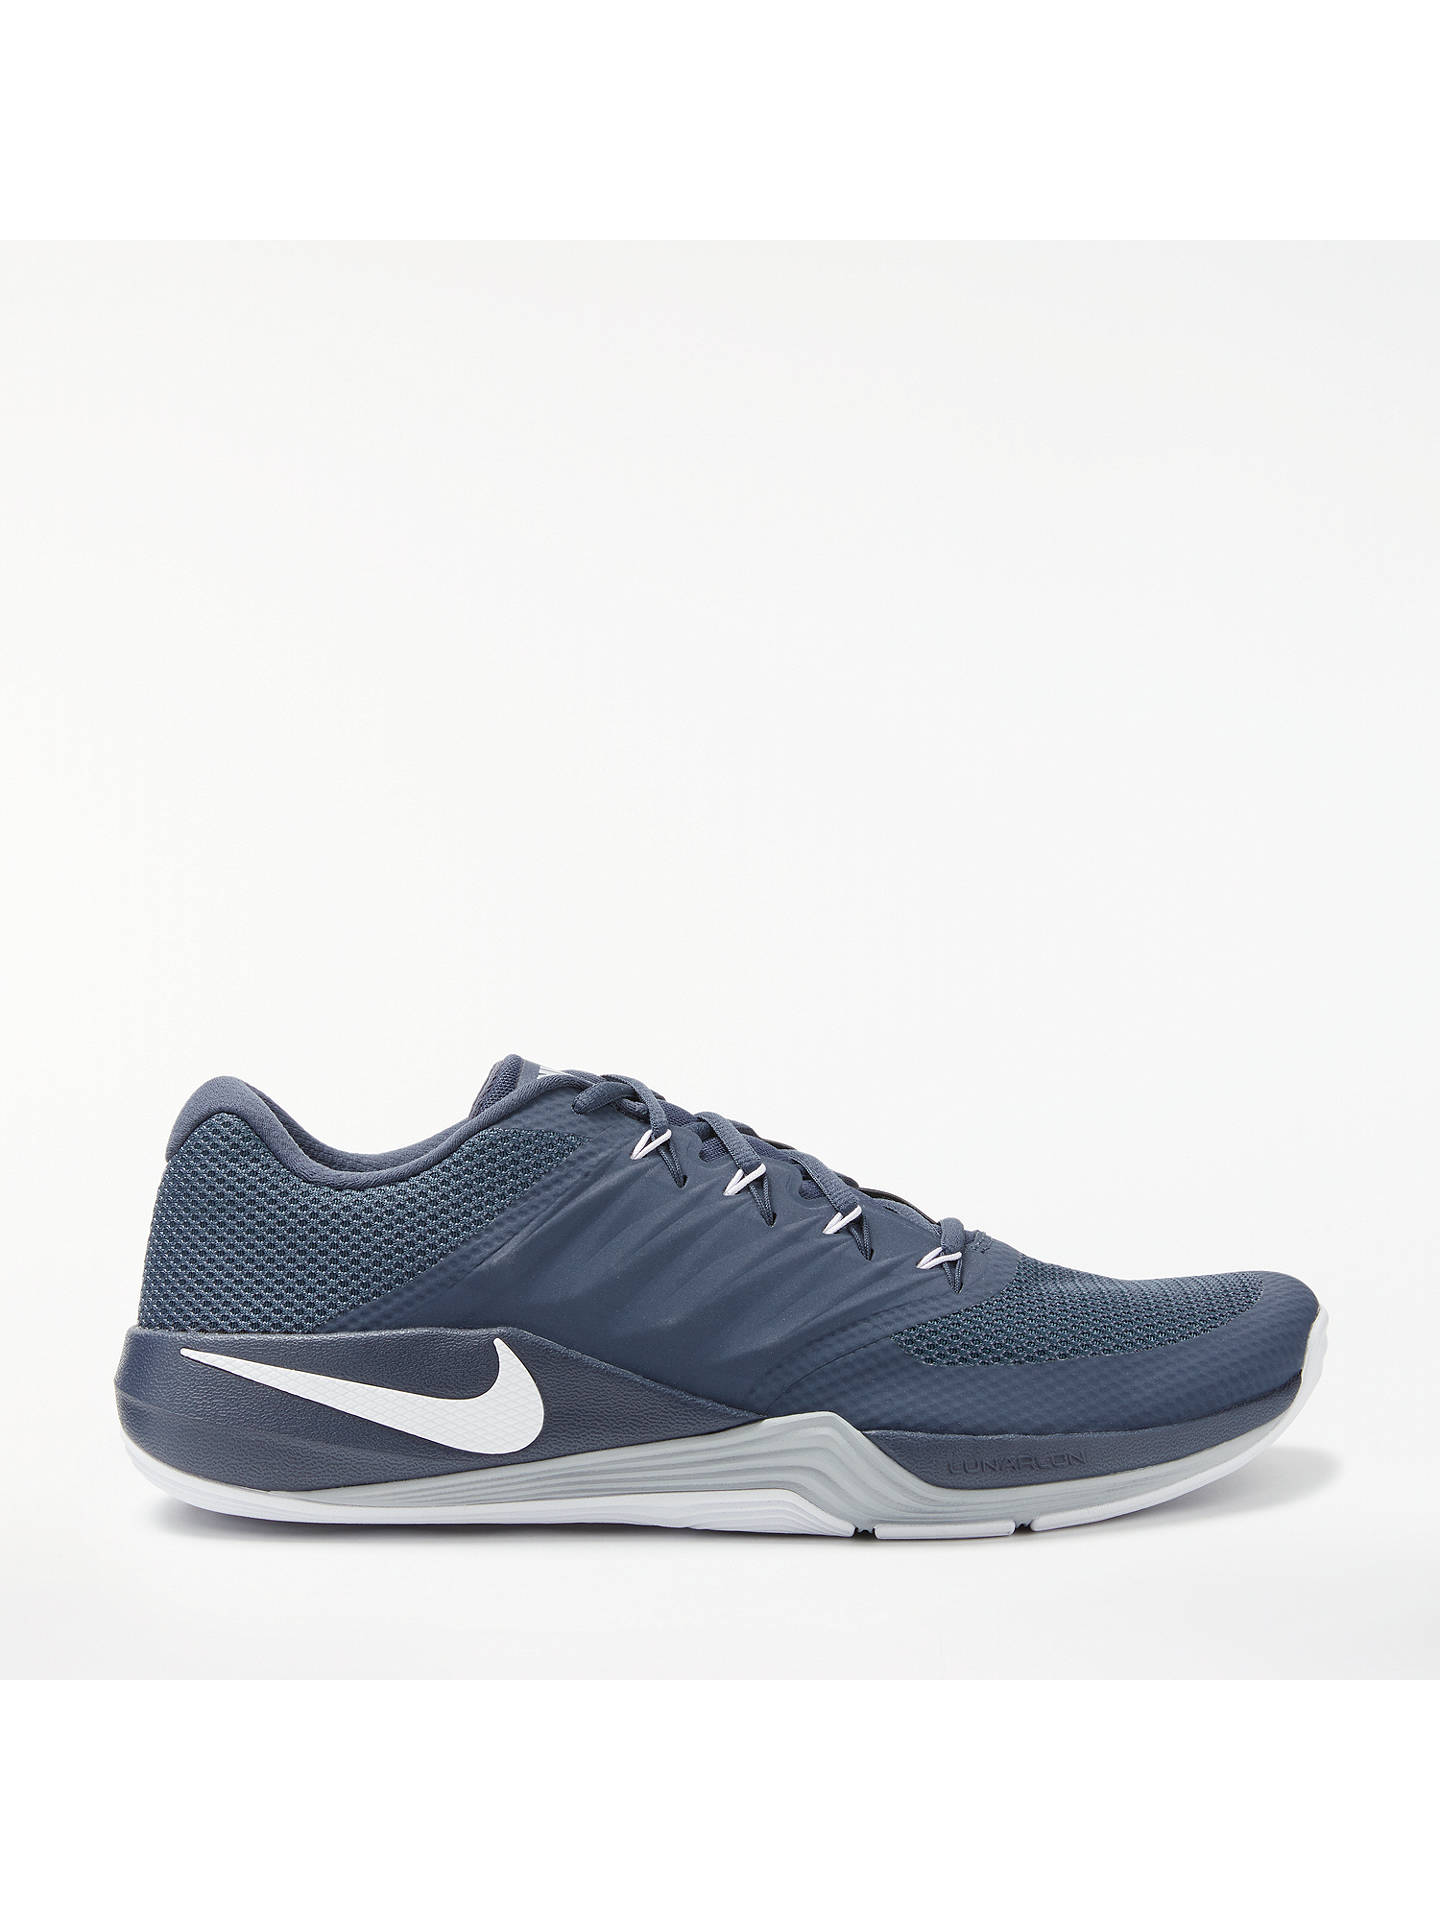 c8c6a1f015573 Nike Lunar Prime Iron II Men s Training Shoe at John Lewis   Partners